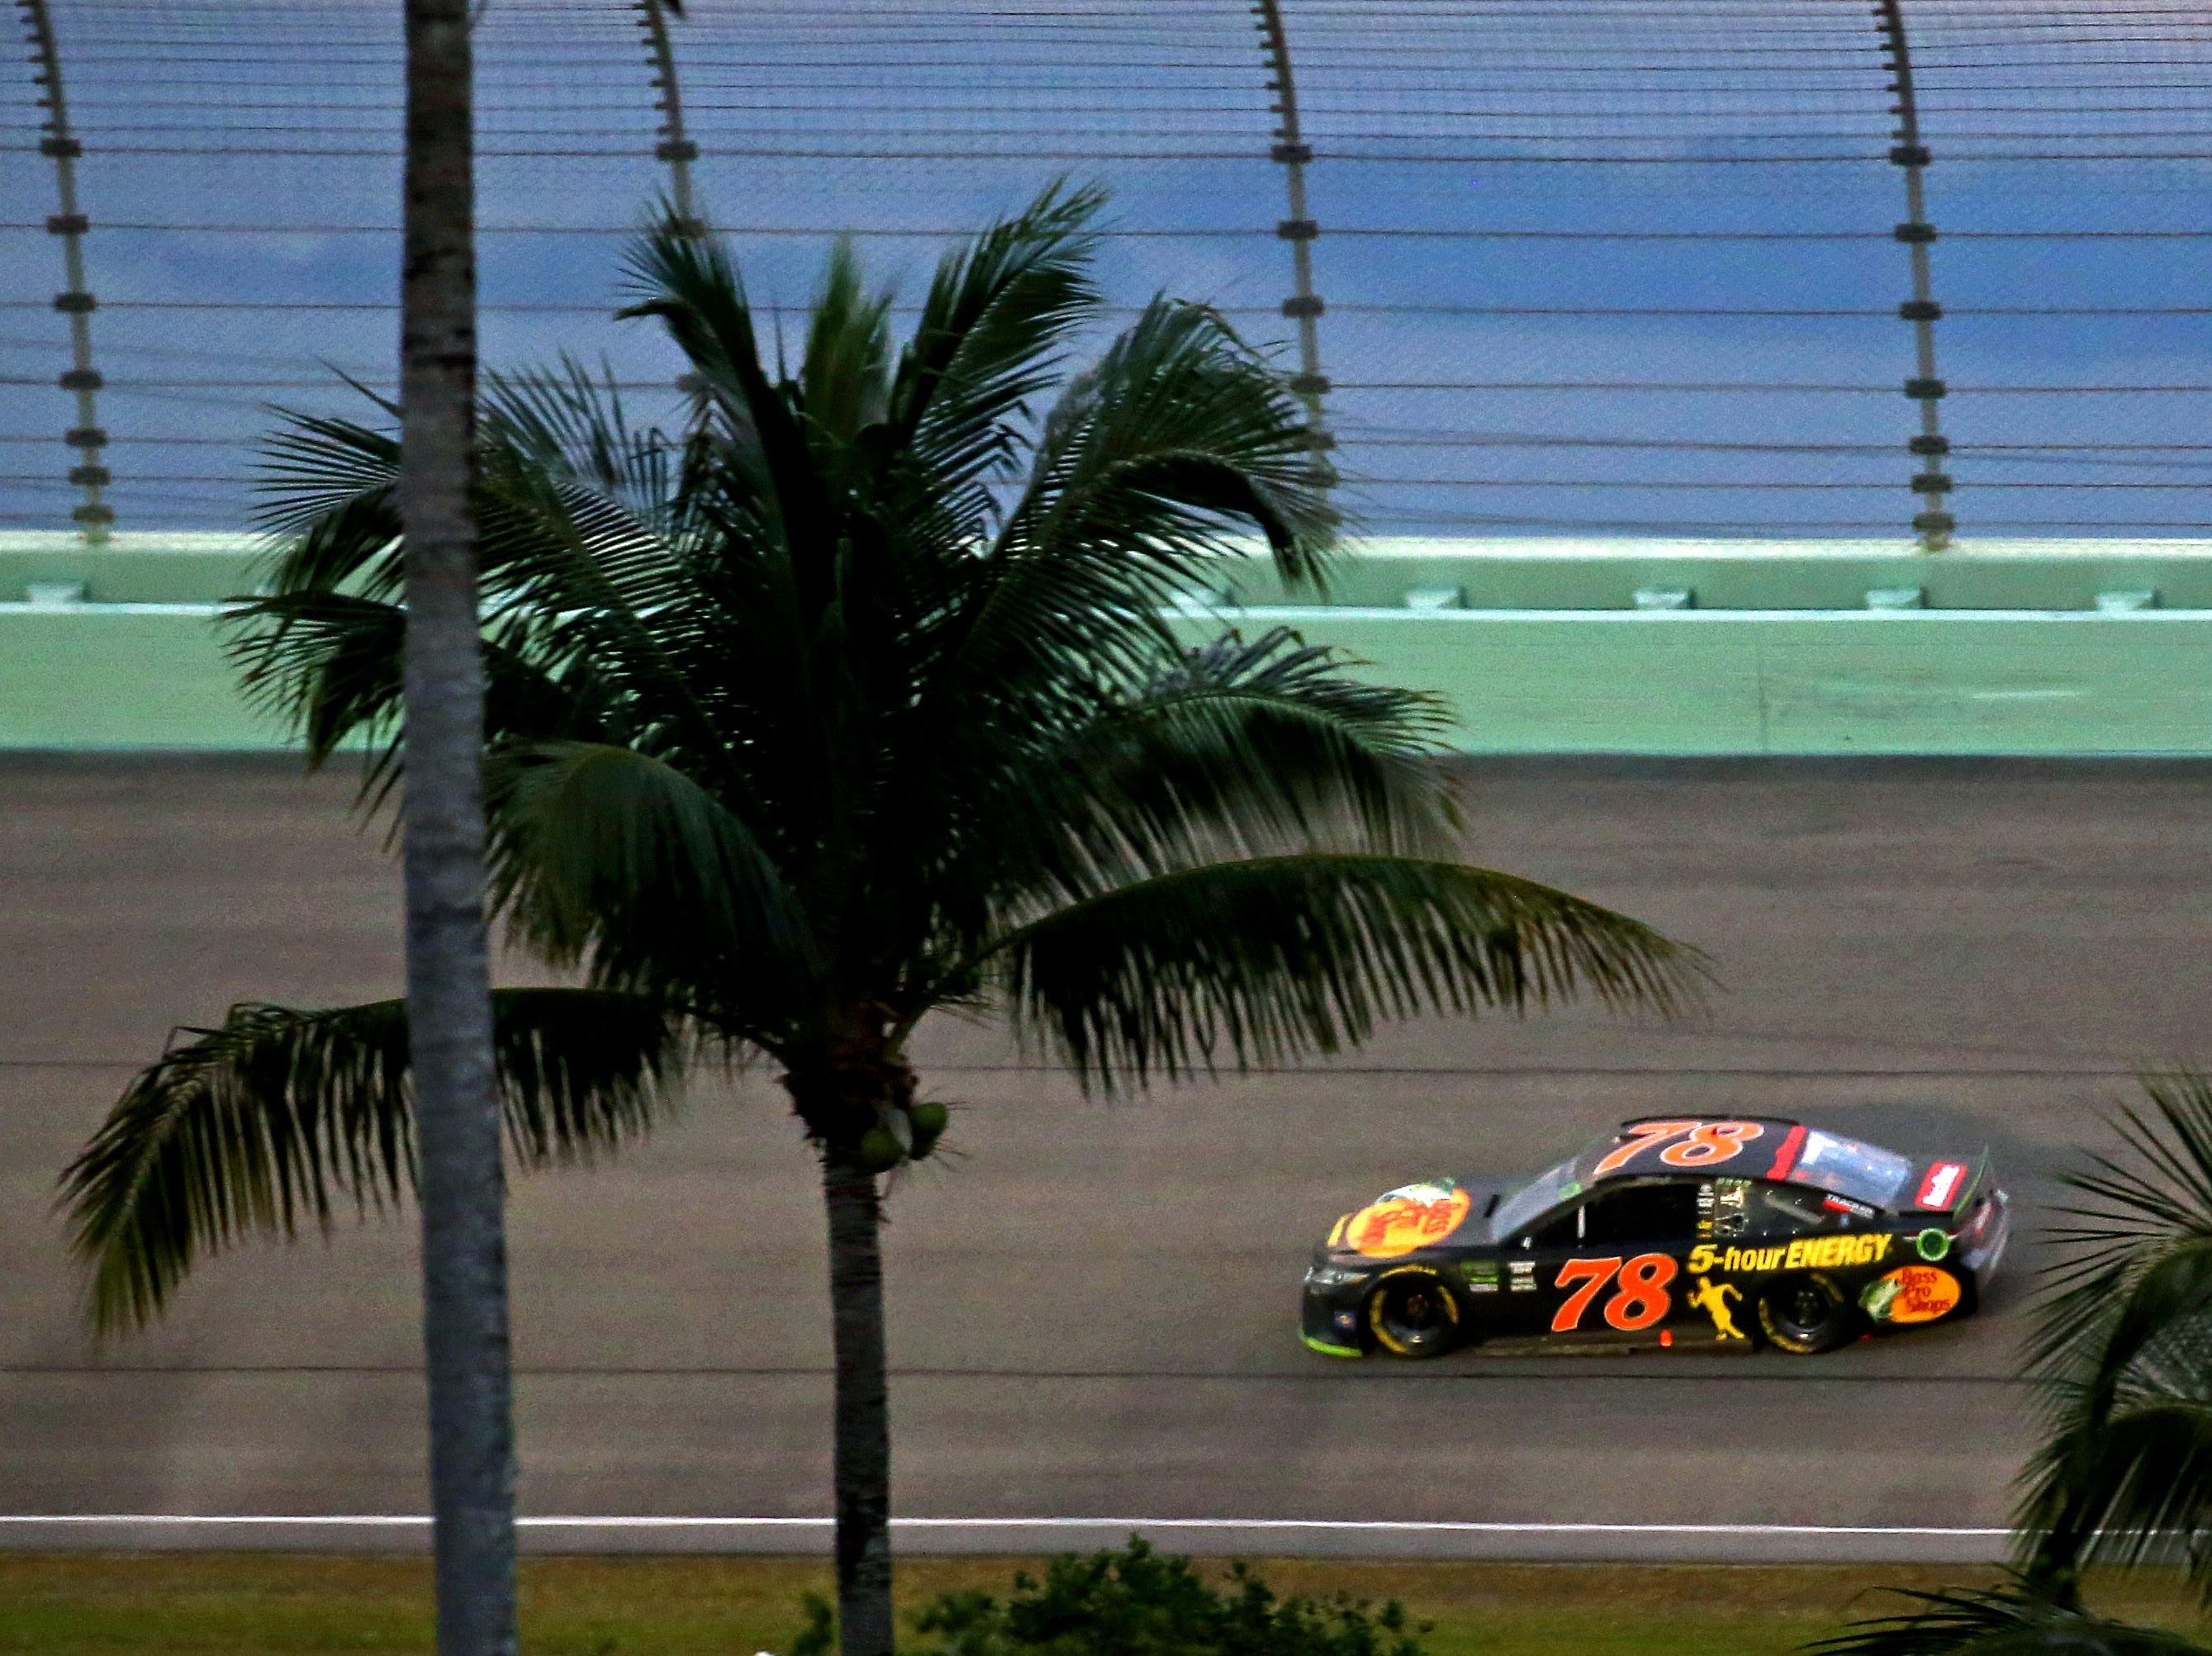 Martin Truex Jr. (78) during the Ford EcoBoost 400 at Homestead-Miami Speedway.